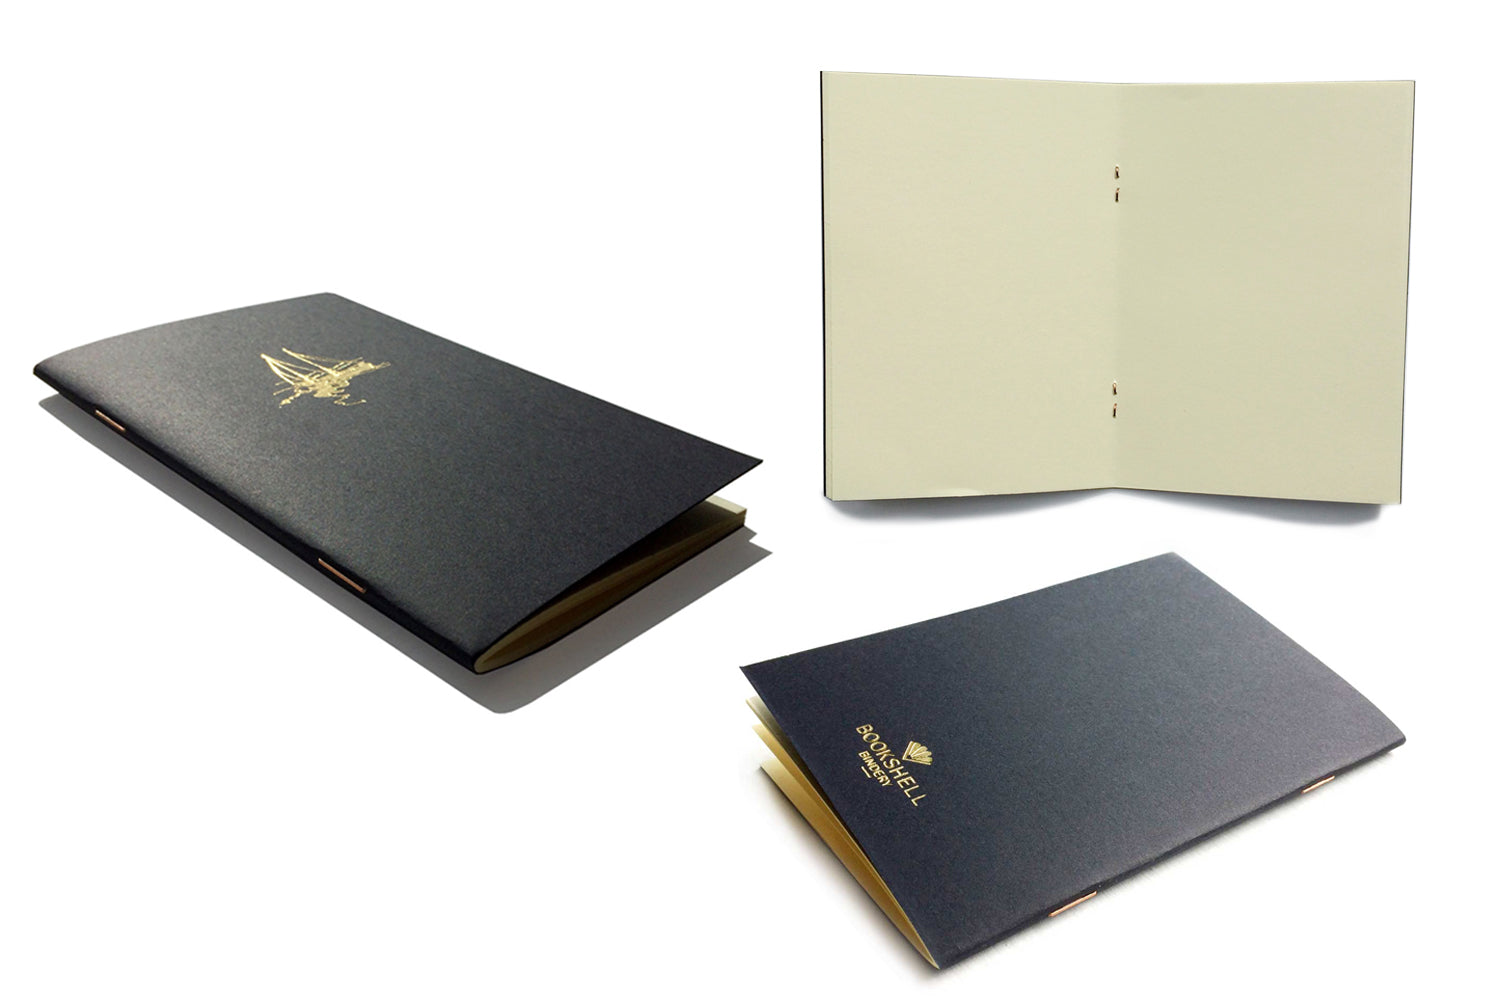 Pocket notebook with choice of gold foil picture from Bookshell, boat